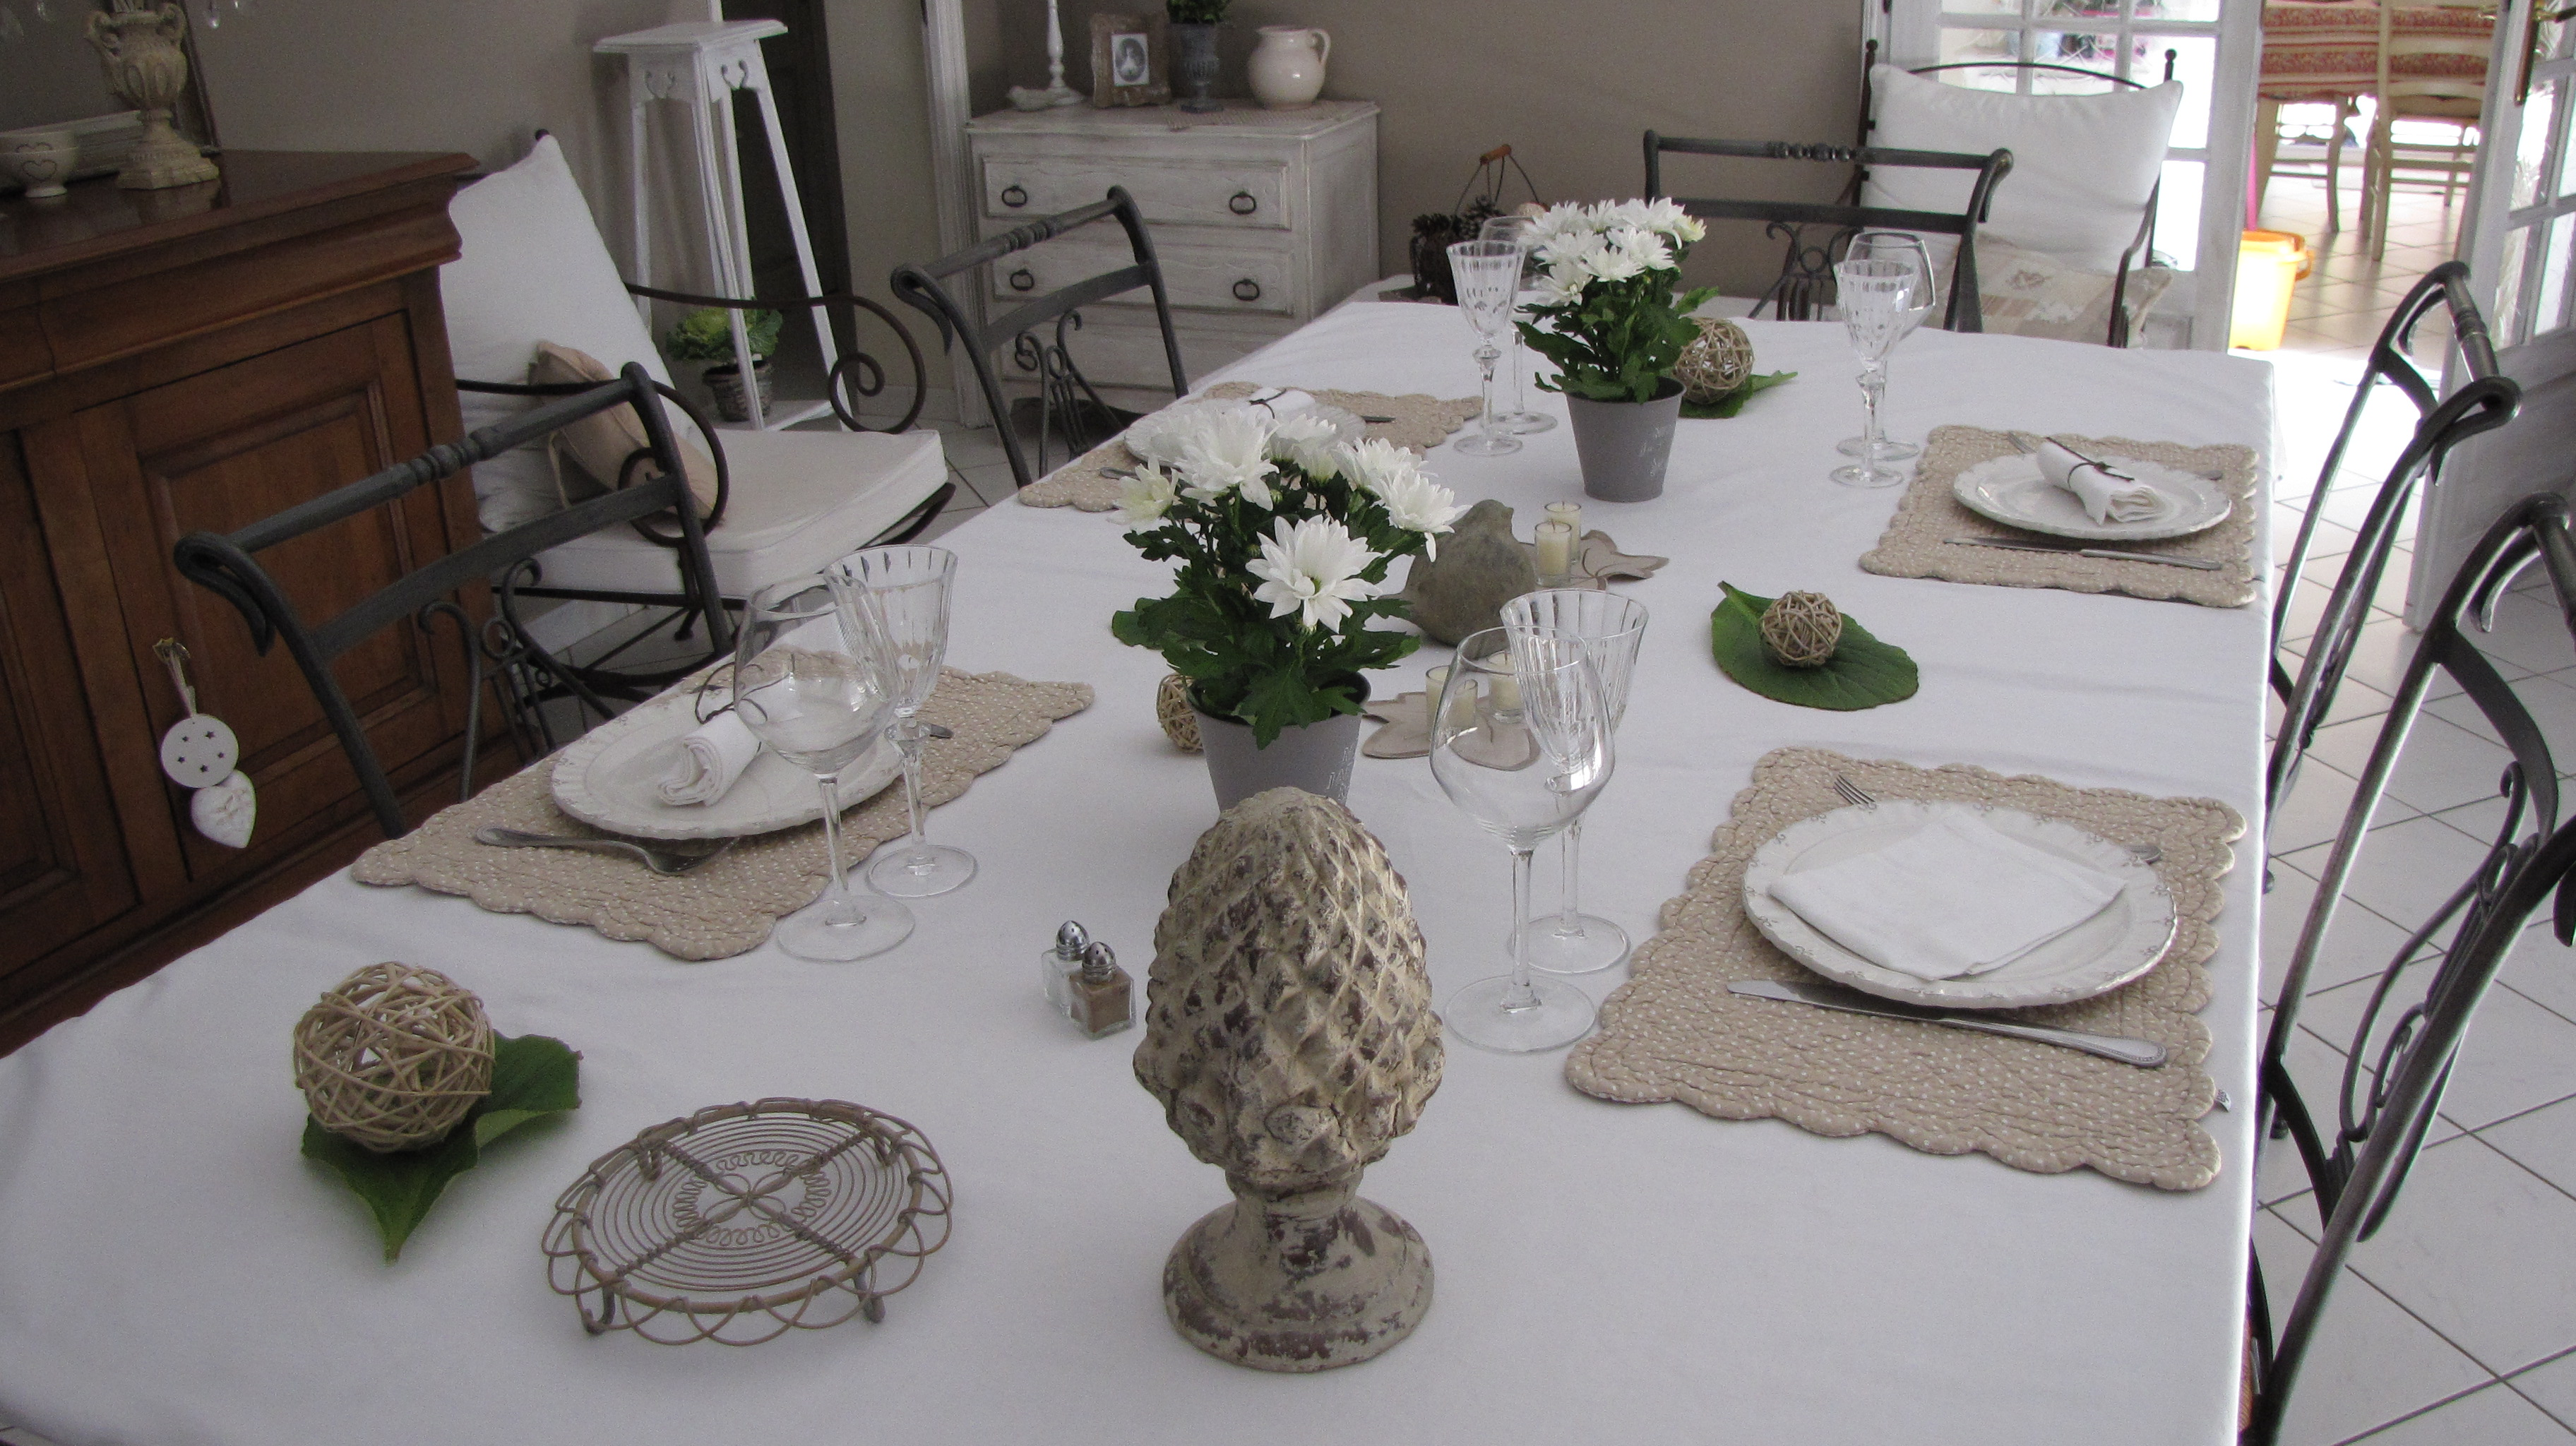 Fil de fer et compagnie d coration de table blanc sur blanc - Idee de decoration de table ...